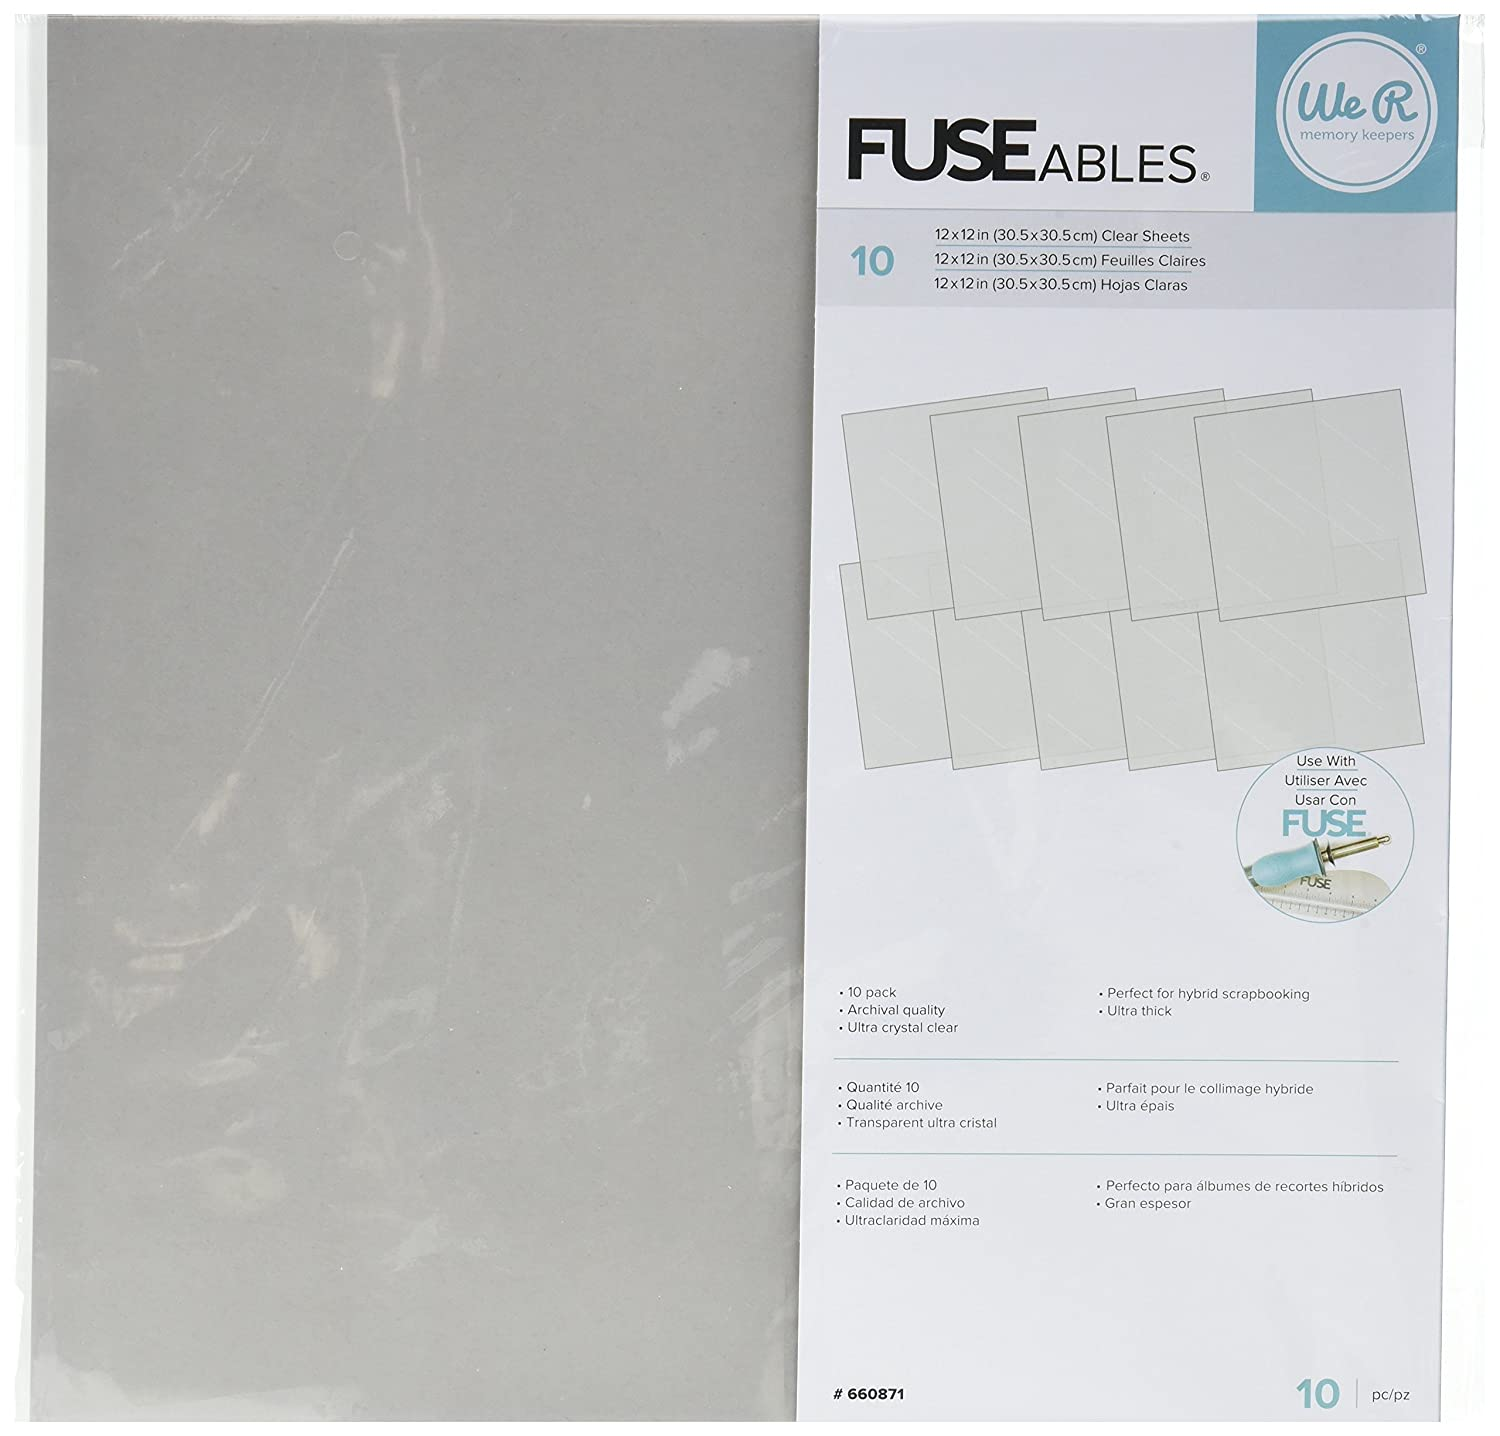 We R Memory Keepers 660871 10 Piece Fuseables Clear Sheets, 12 x 12 12 x 12 American Crafts